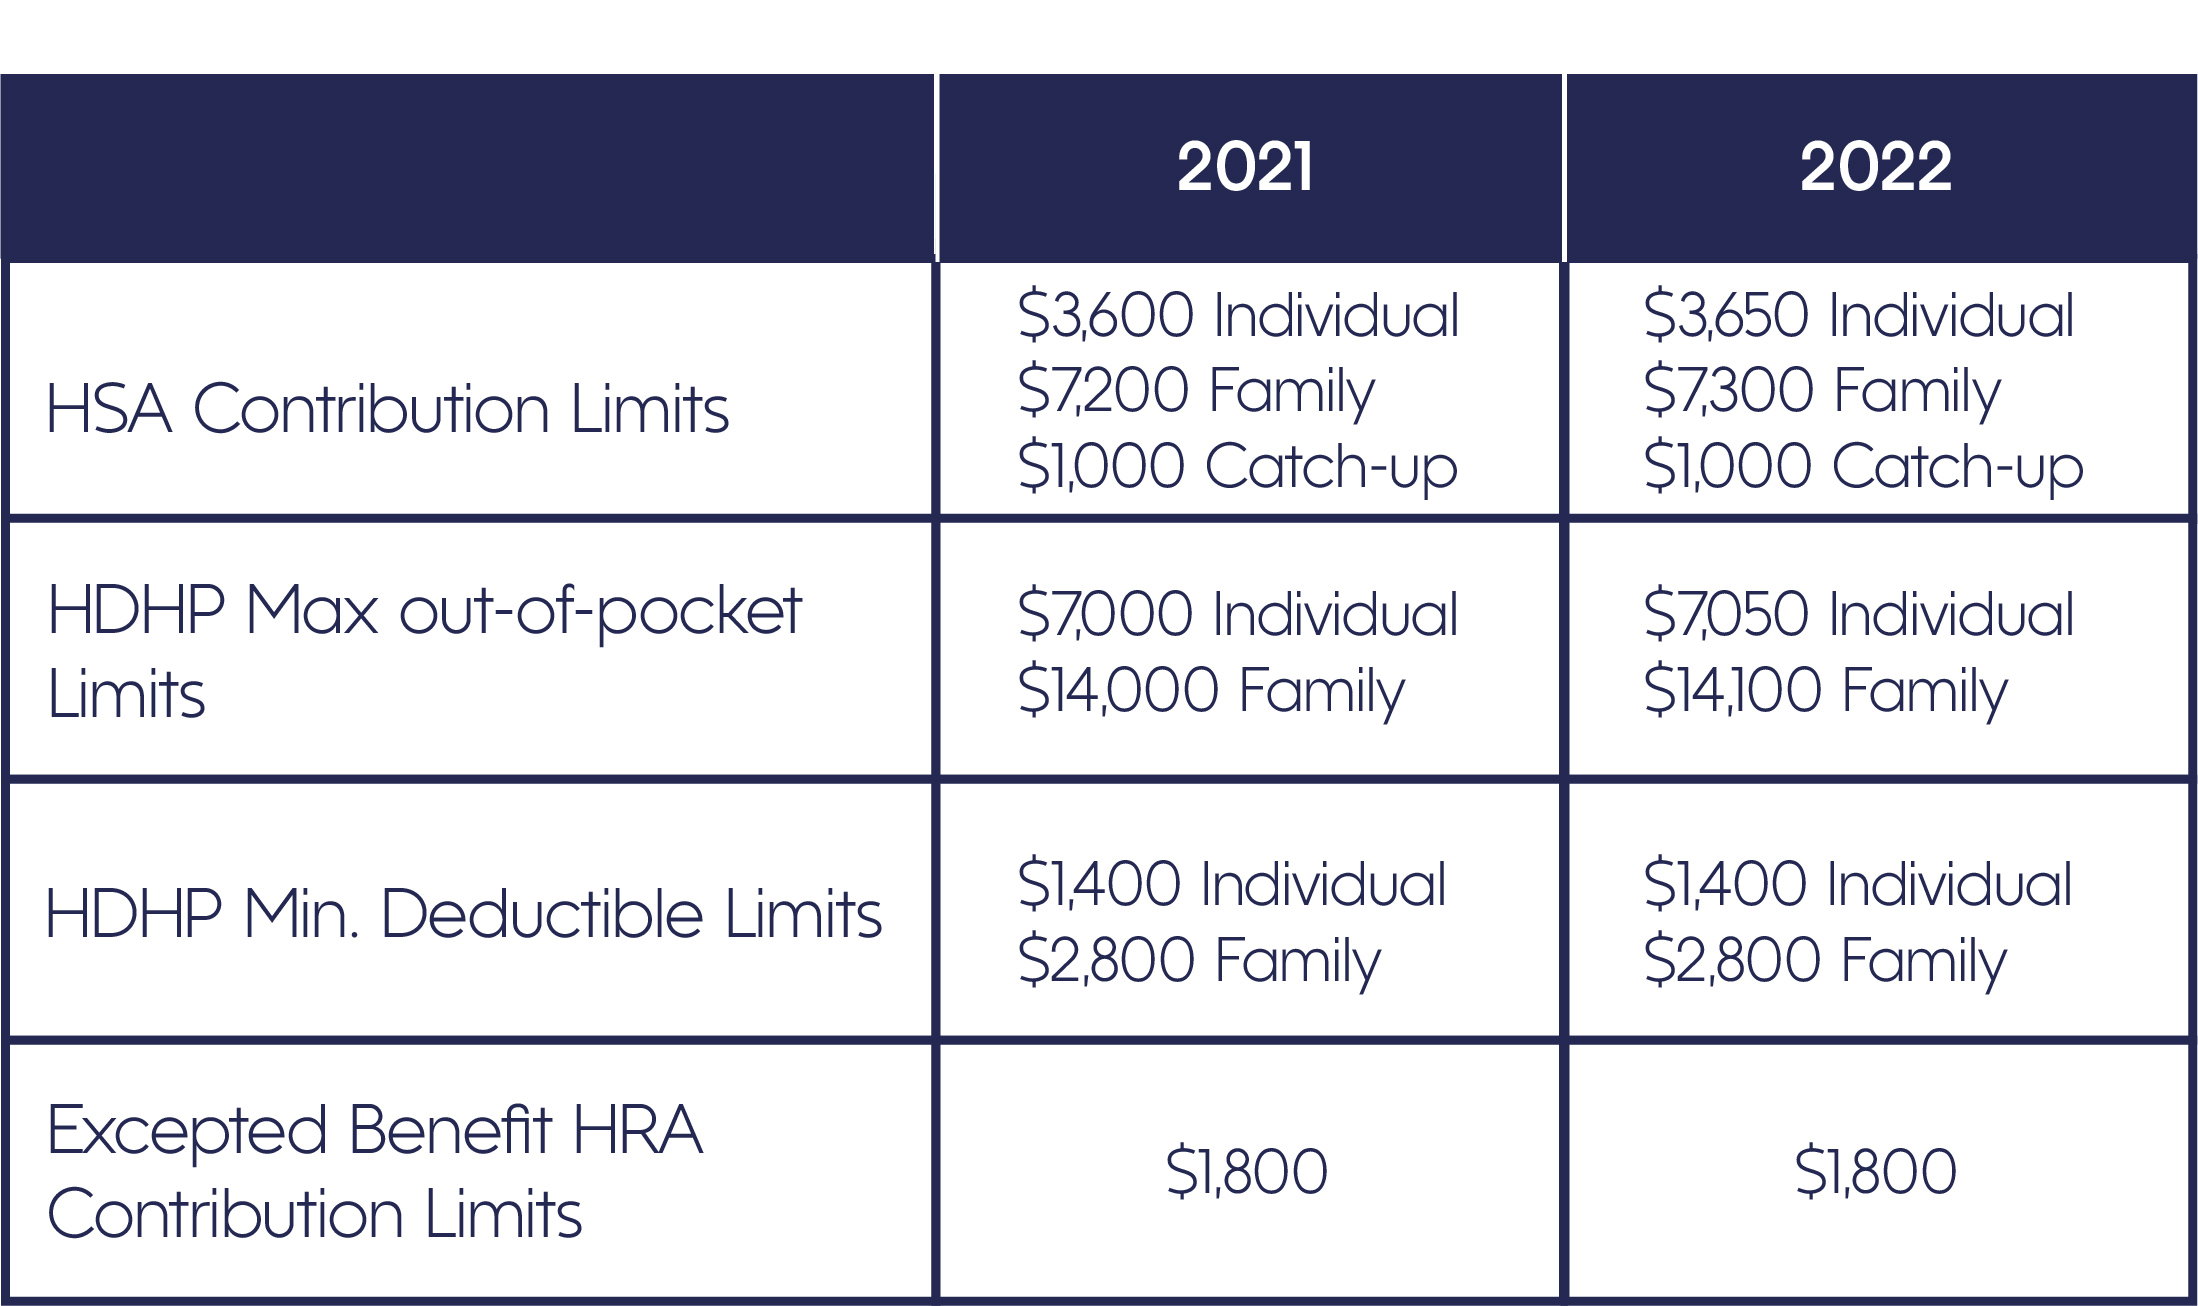 HSA Limits Table for 2021 and 2022